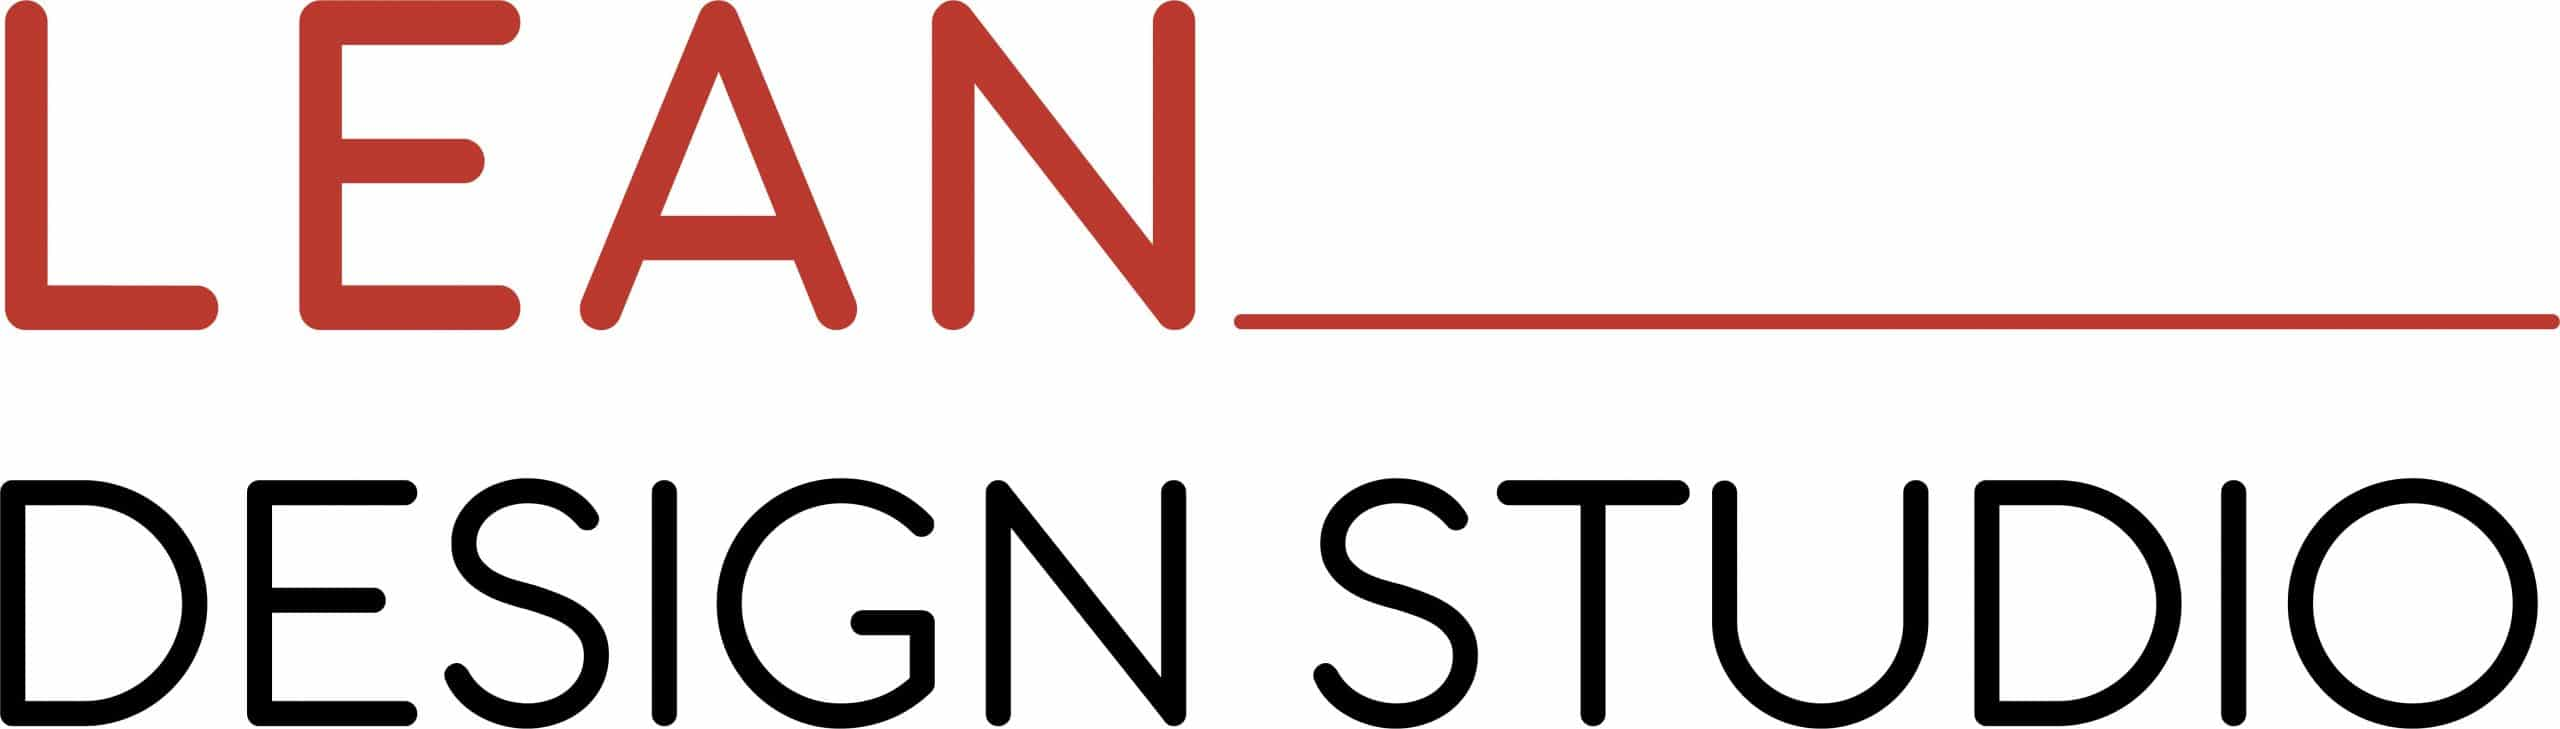 Lean Design Studio Logo